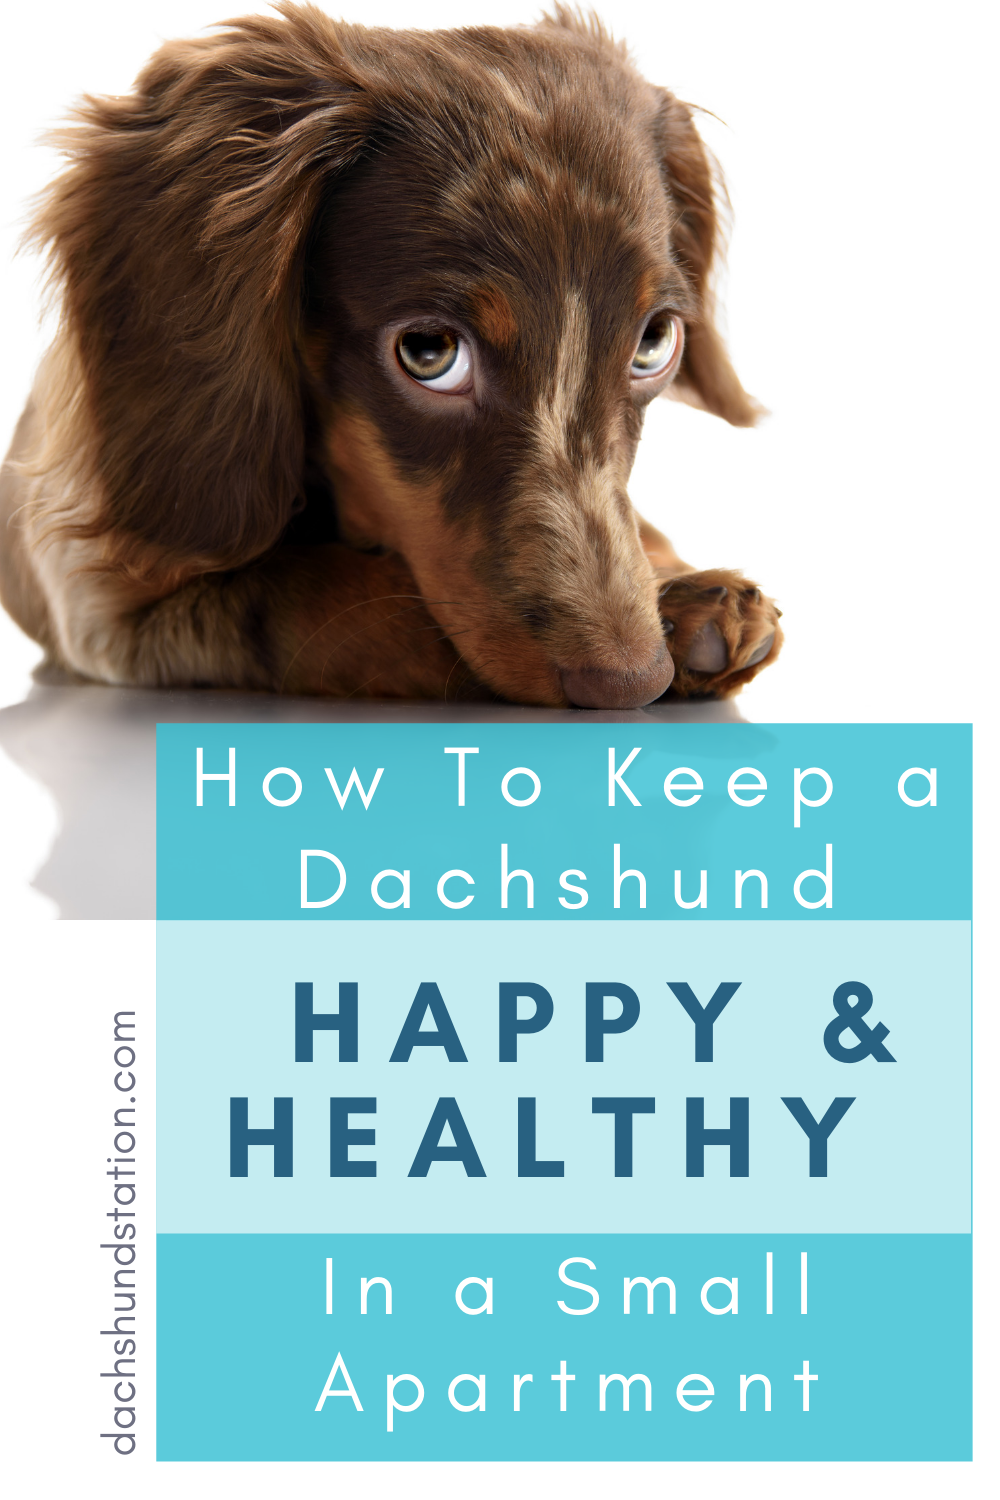 Pin On Dogs Health And Tips Community